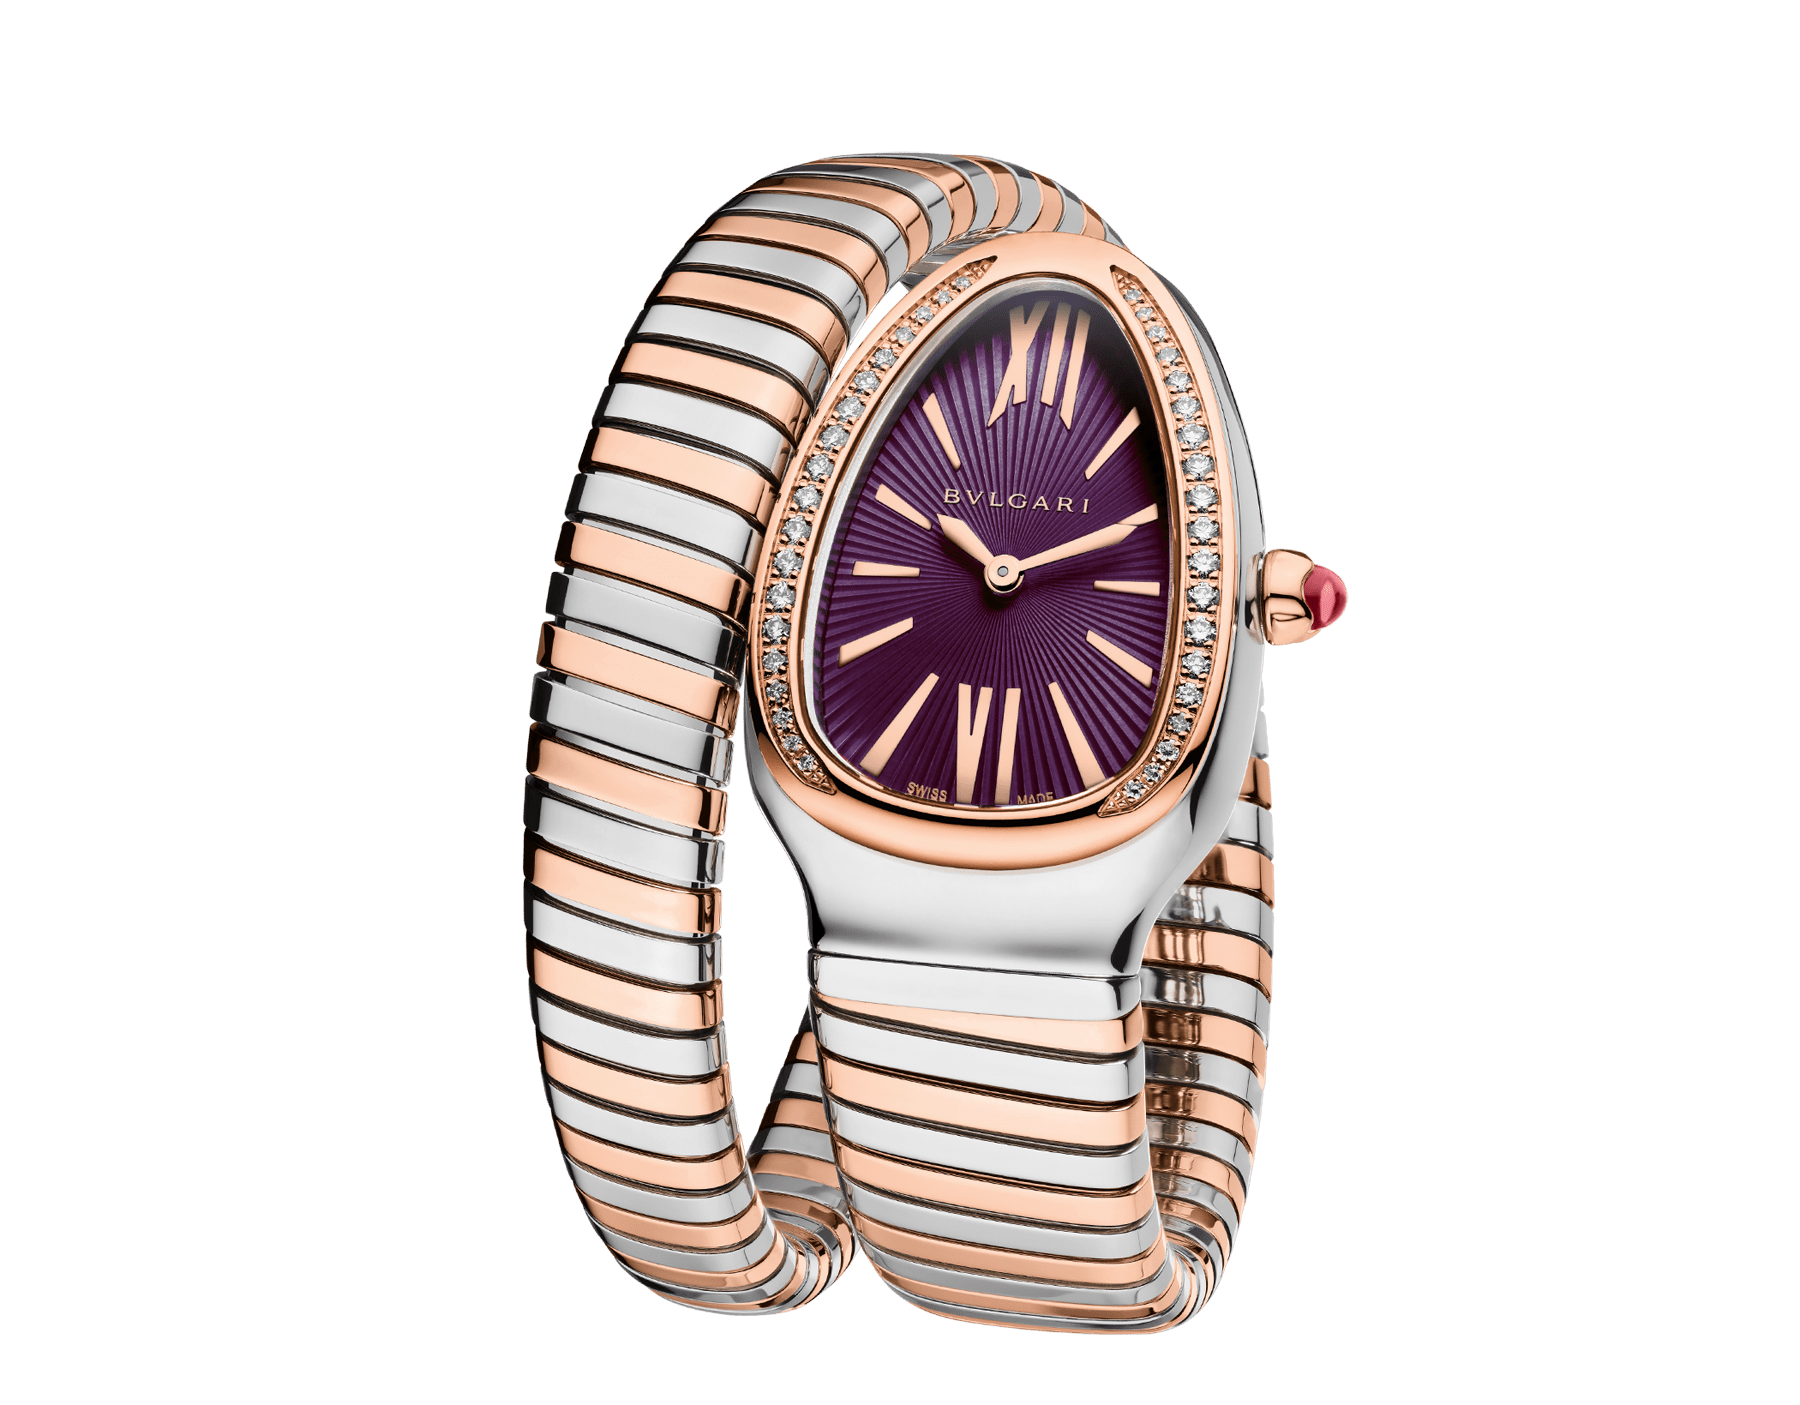 Serpenti Tubogas single spiral watch with stainless steel case, 18 kt rose gold bezel set with brilliant cut diamonds, violet lacquered dial, 18 kt rose gold and stainless steel bracelet. 102493 image 2